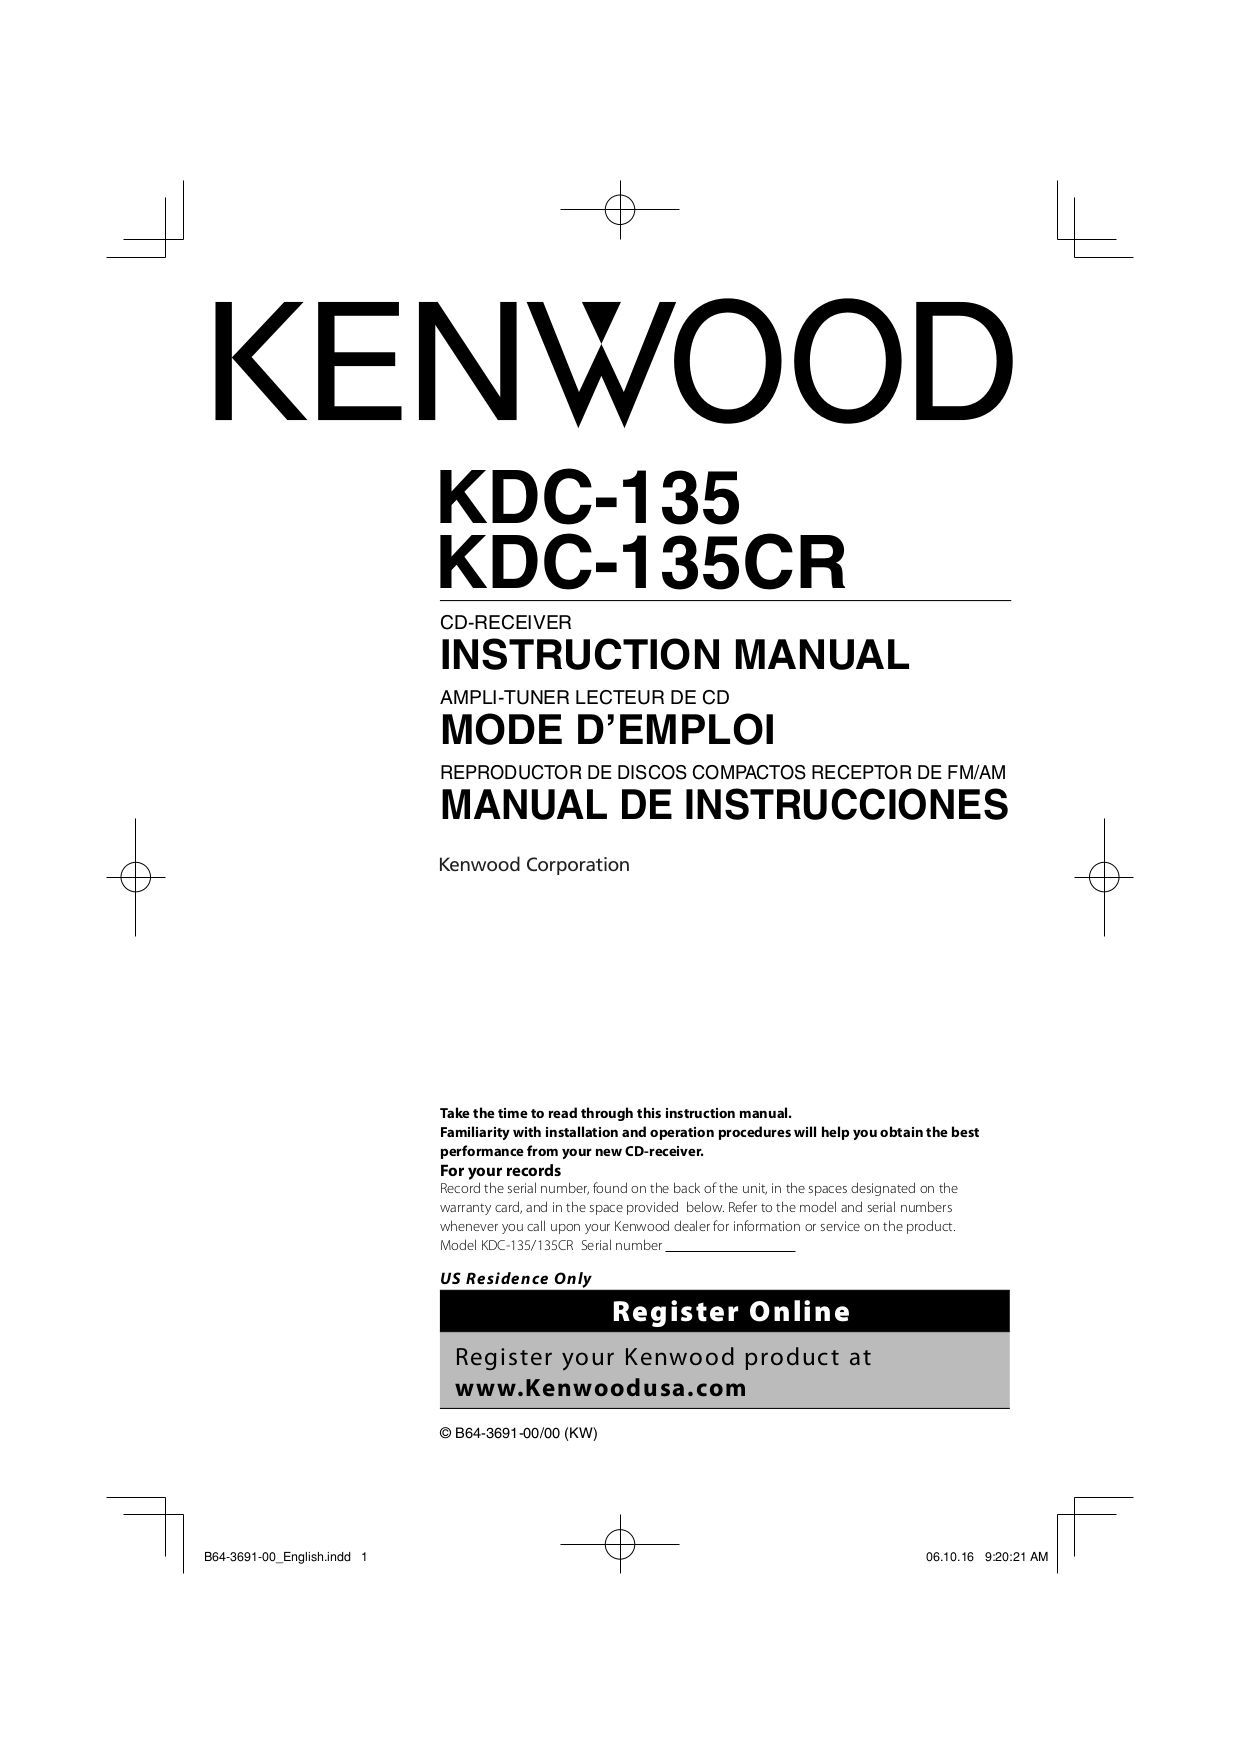 Download free pdf for Kenwood KDC-135 Car Receiver manual